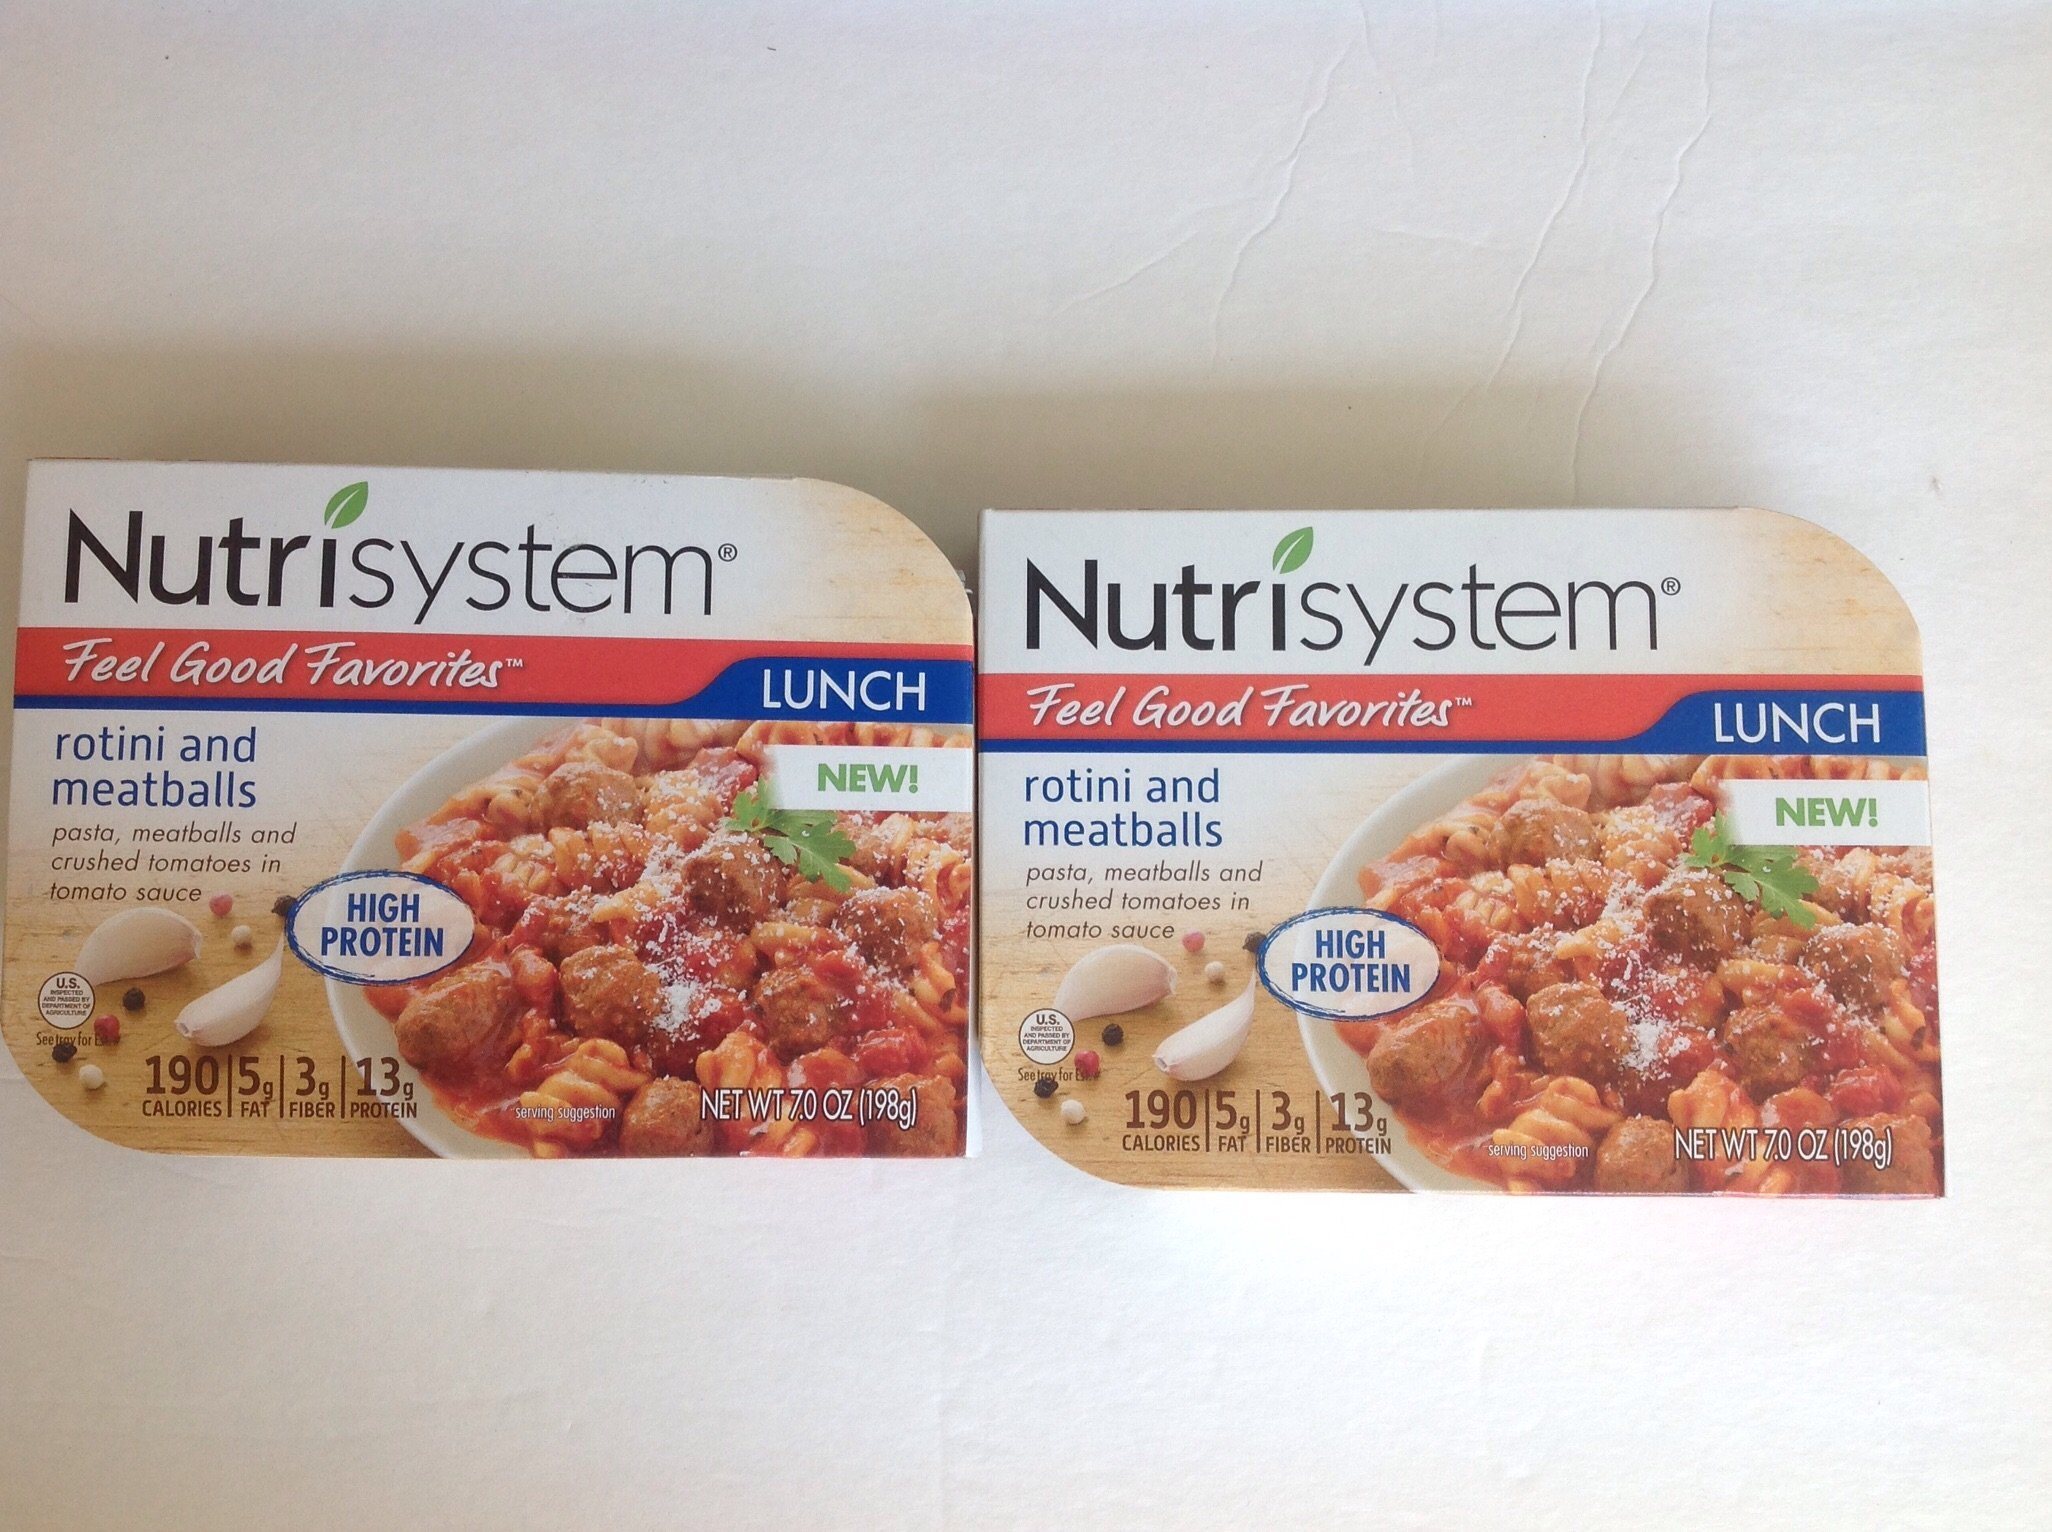 Nutrisystem Rotini and Meatballs Feel Good Favorites Lunch 2 pack by Nutrisystem